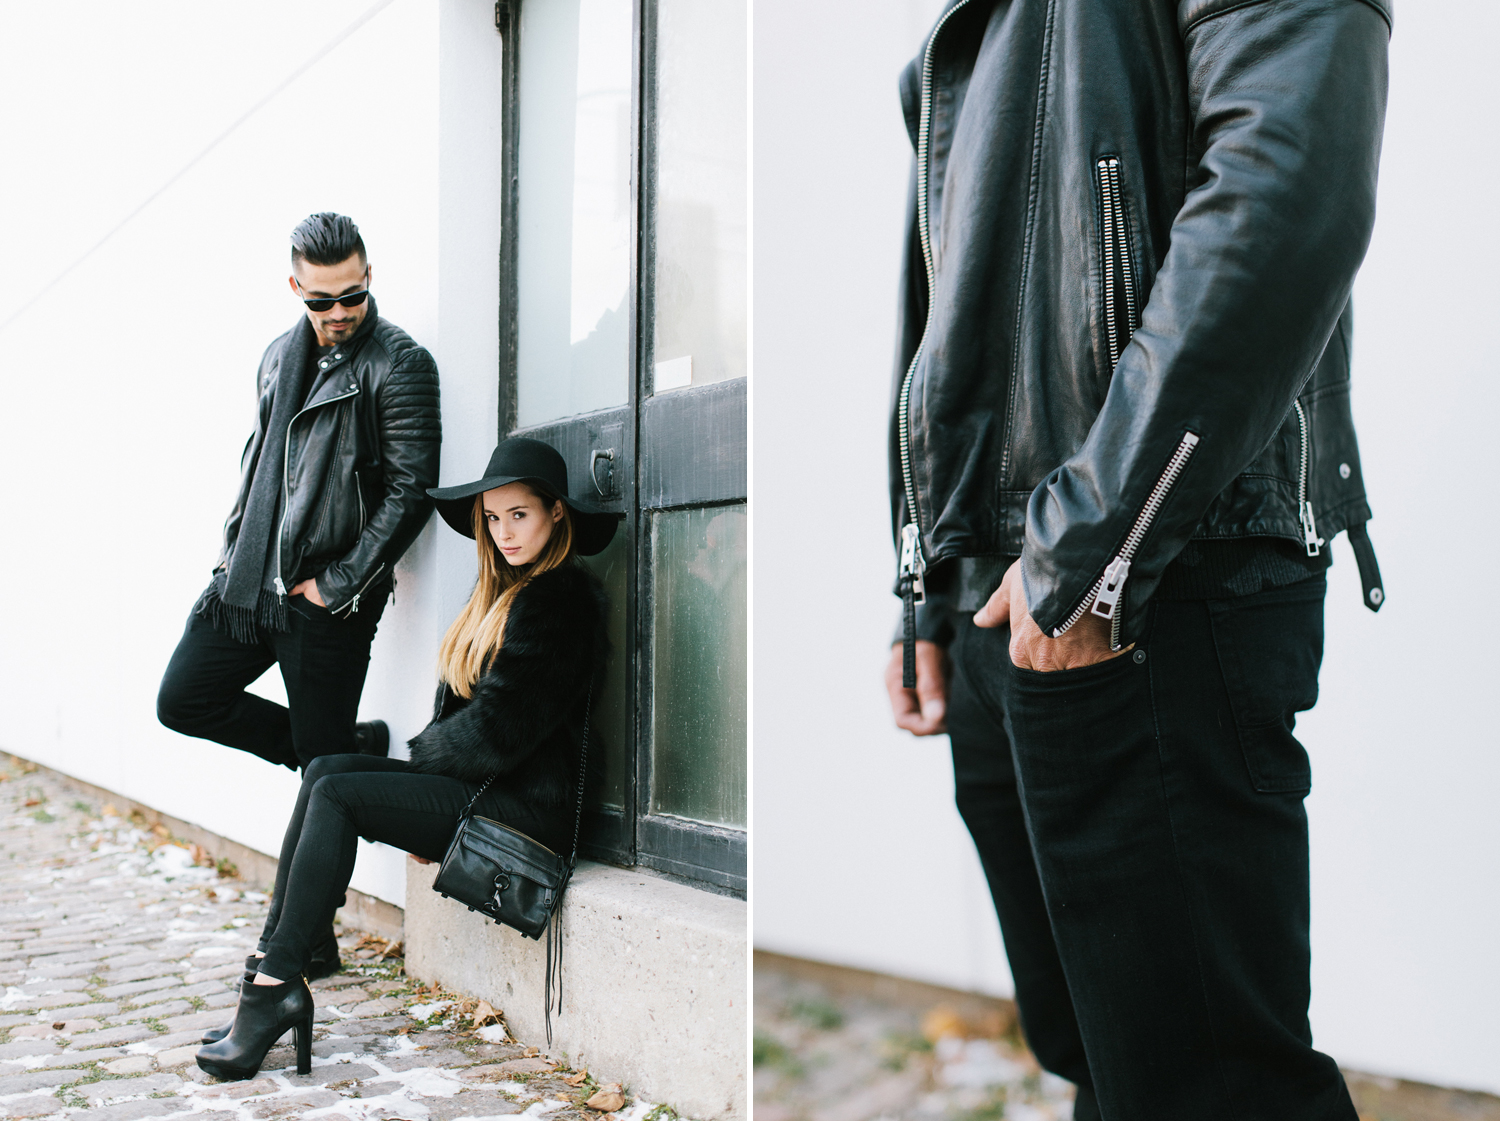 Jodi-Blk-fashion-blogger-Jose-Lopez-fit-michael-rousseau-photography-streetwear-fashion-engagement-session030.jpg